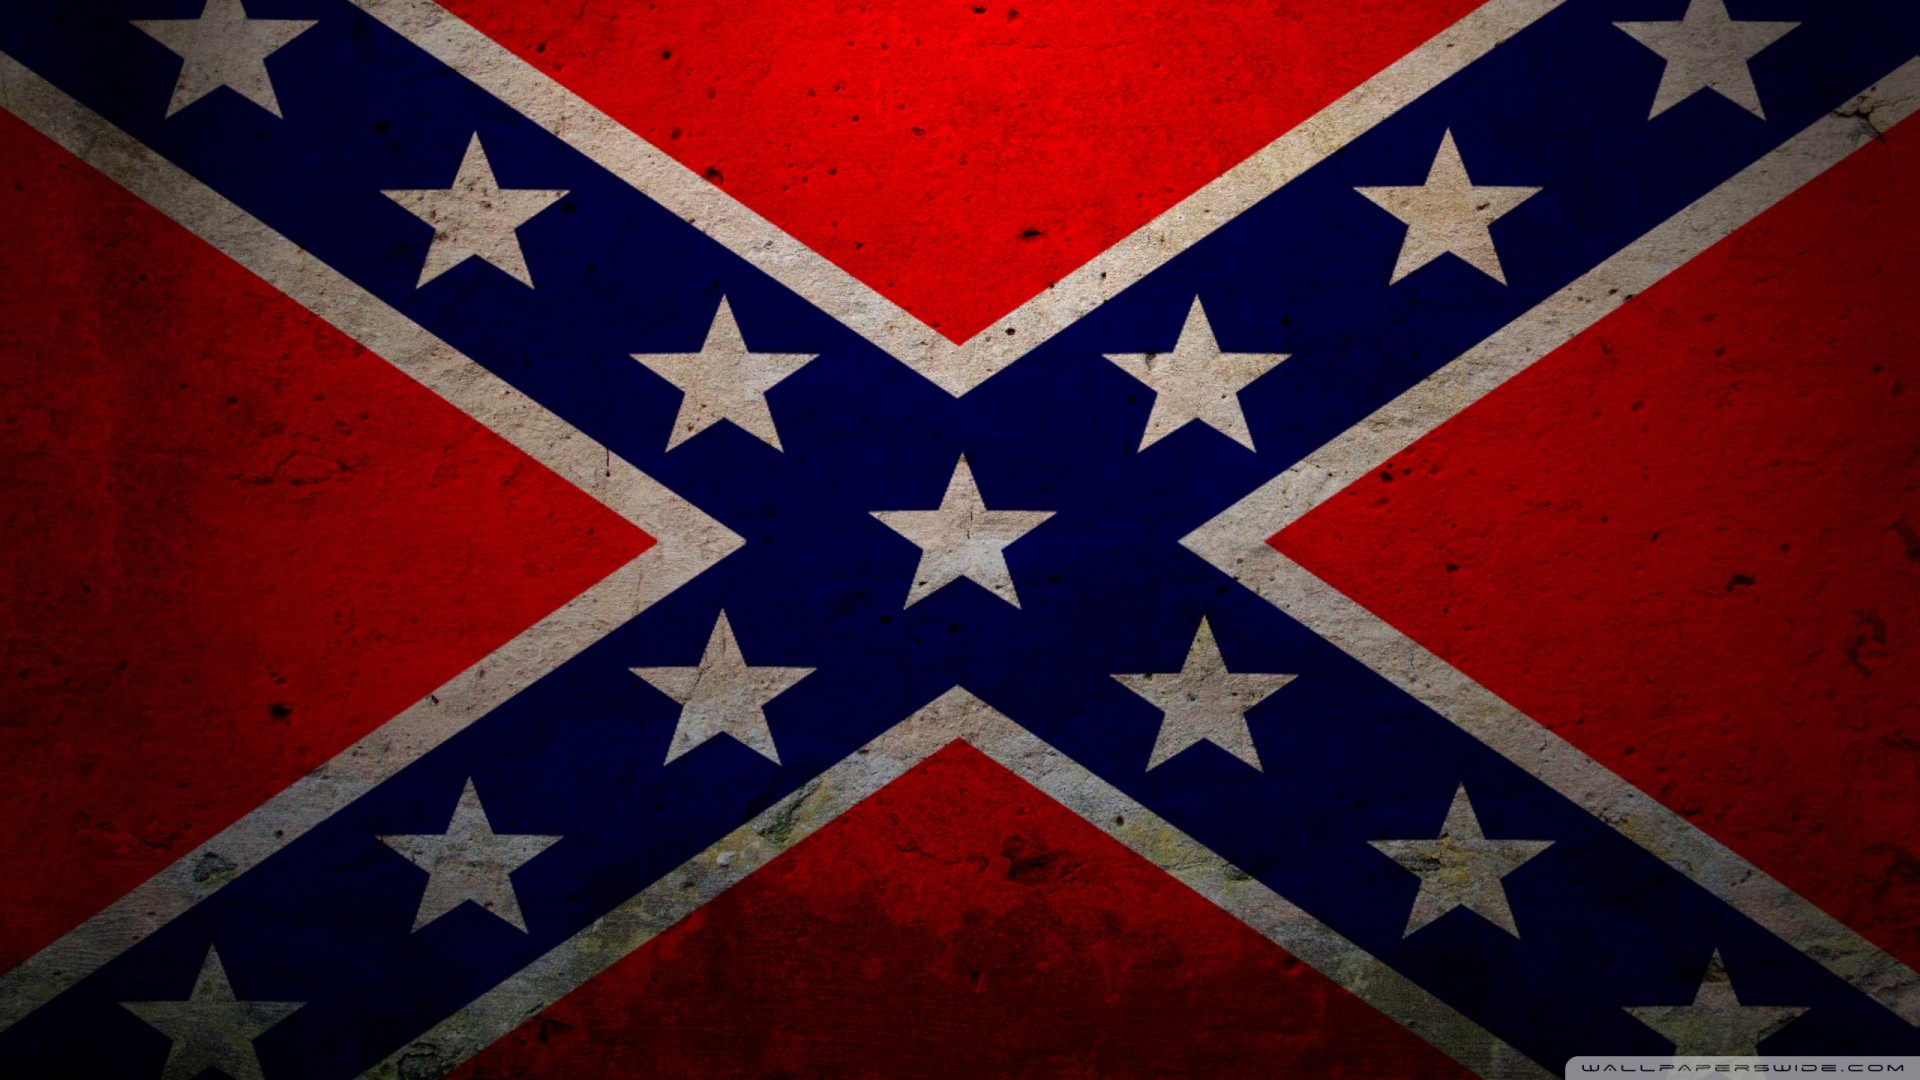 Confederate Flag Wallpaper Hd Confederate Flag 4k Hd Desktop Wallpaper For 4k Ultra Hd